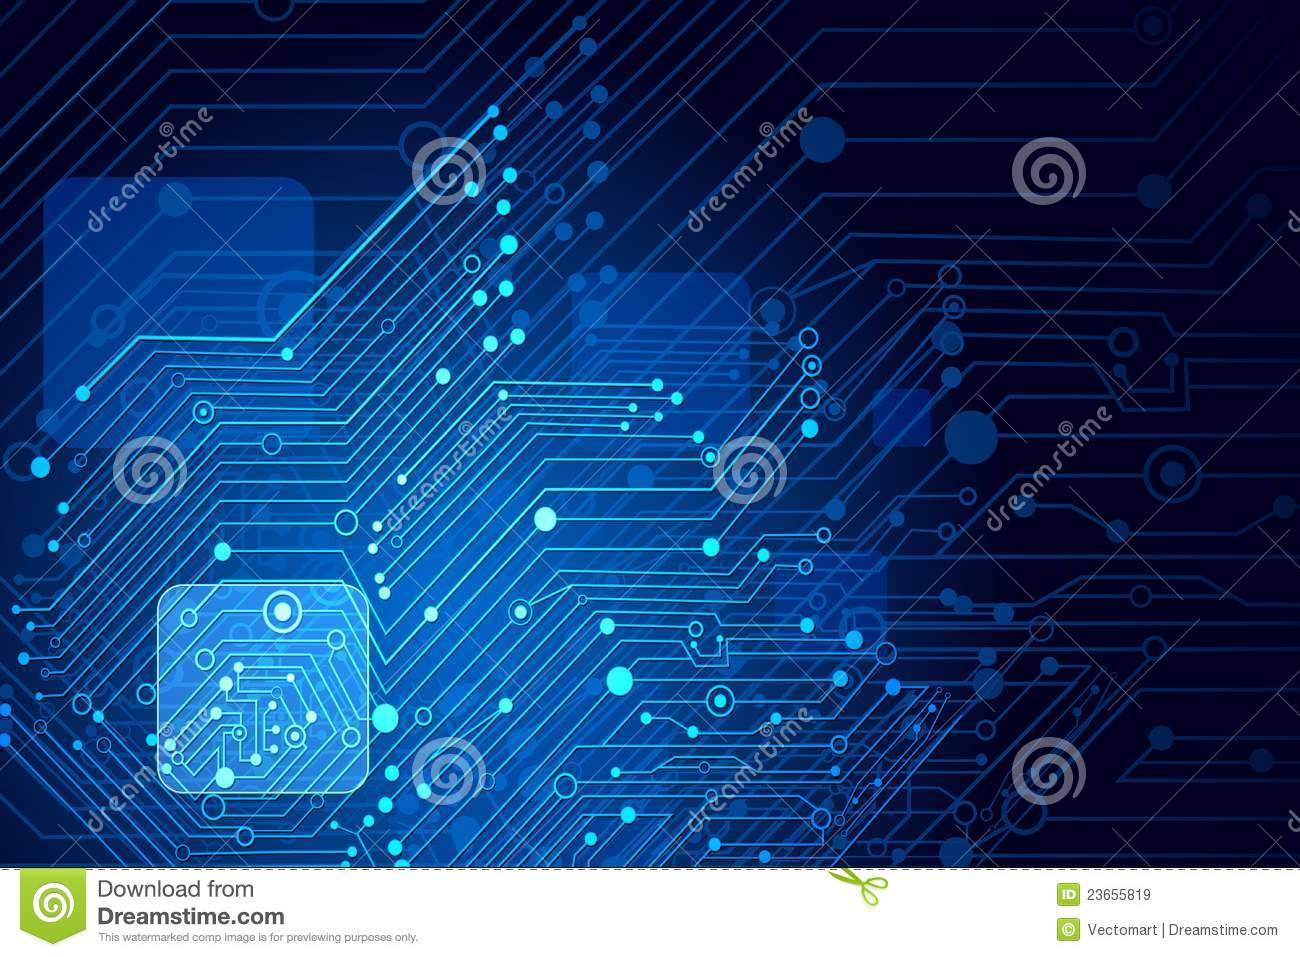 Motherboard Wallpaper 3d High Tech Background Royalty Free Stock Images Image